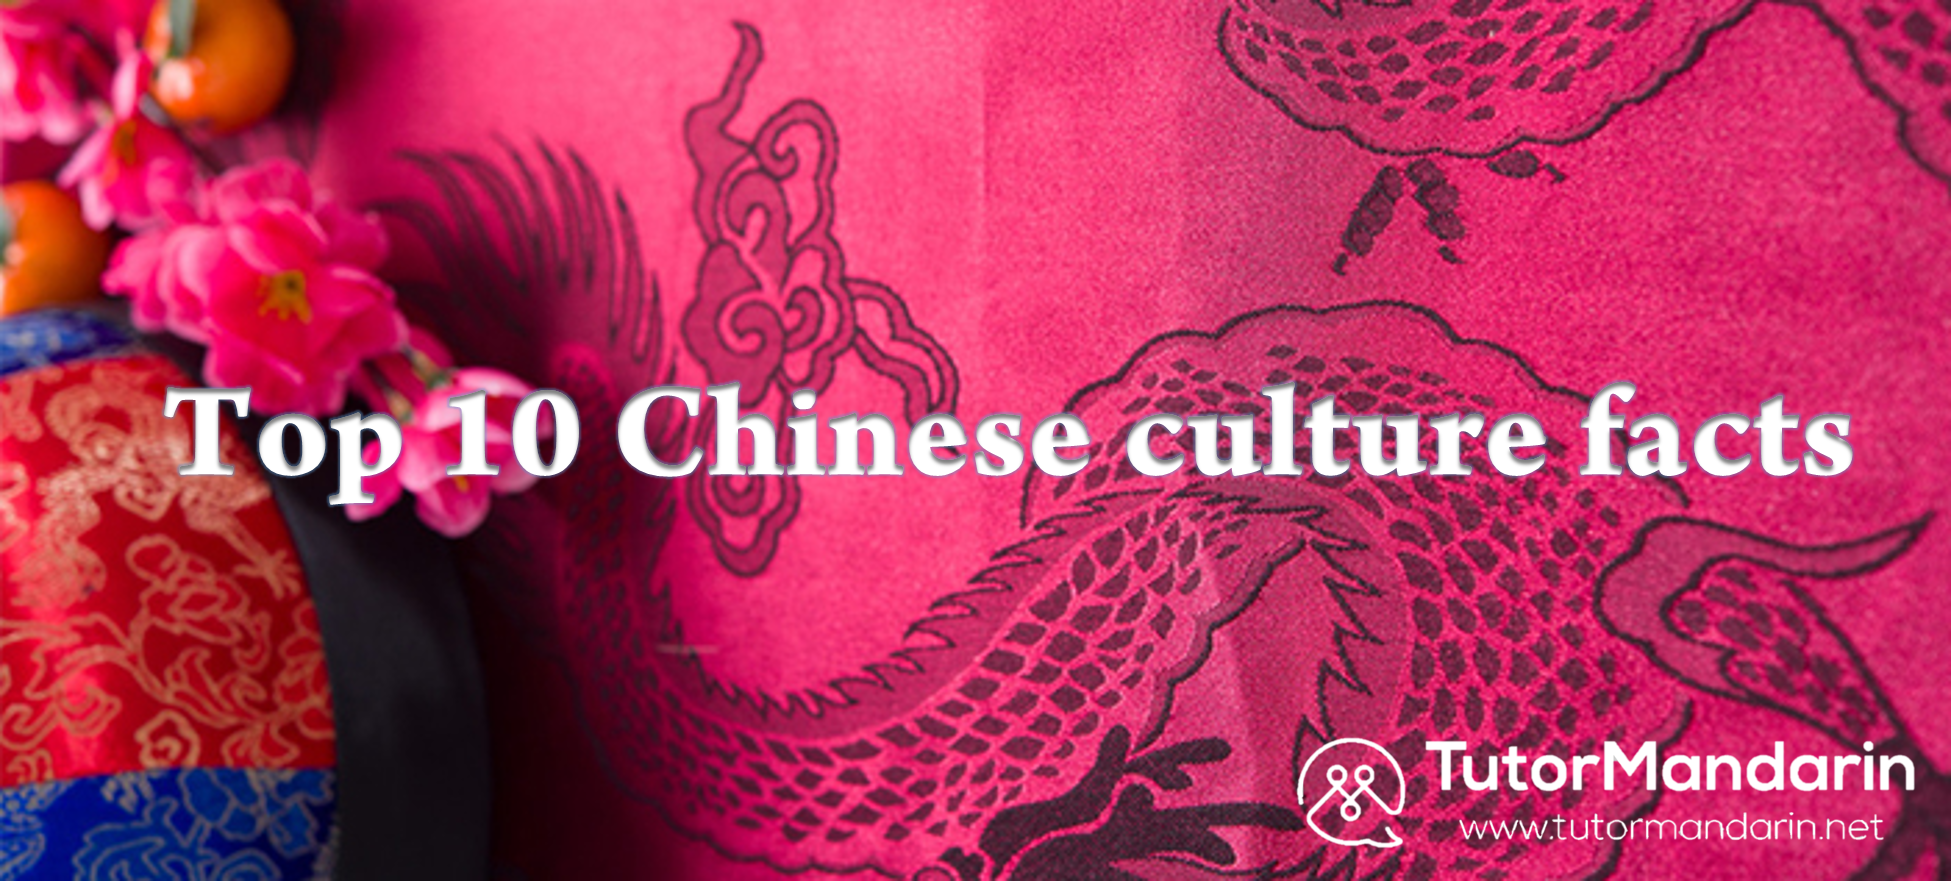 cover photo for Top 10 Chinese culture